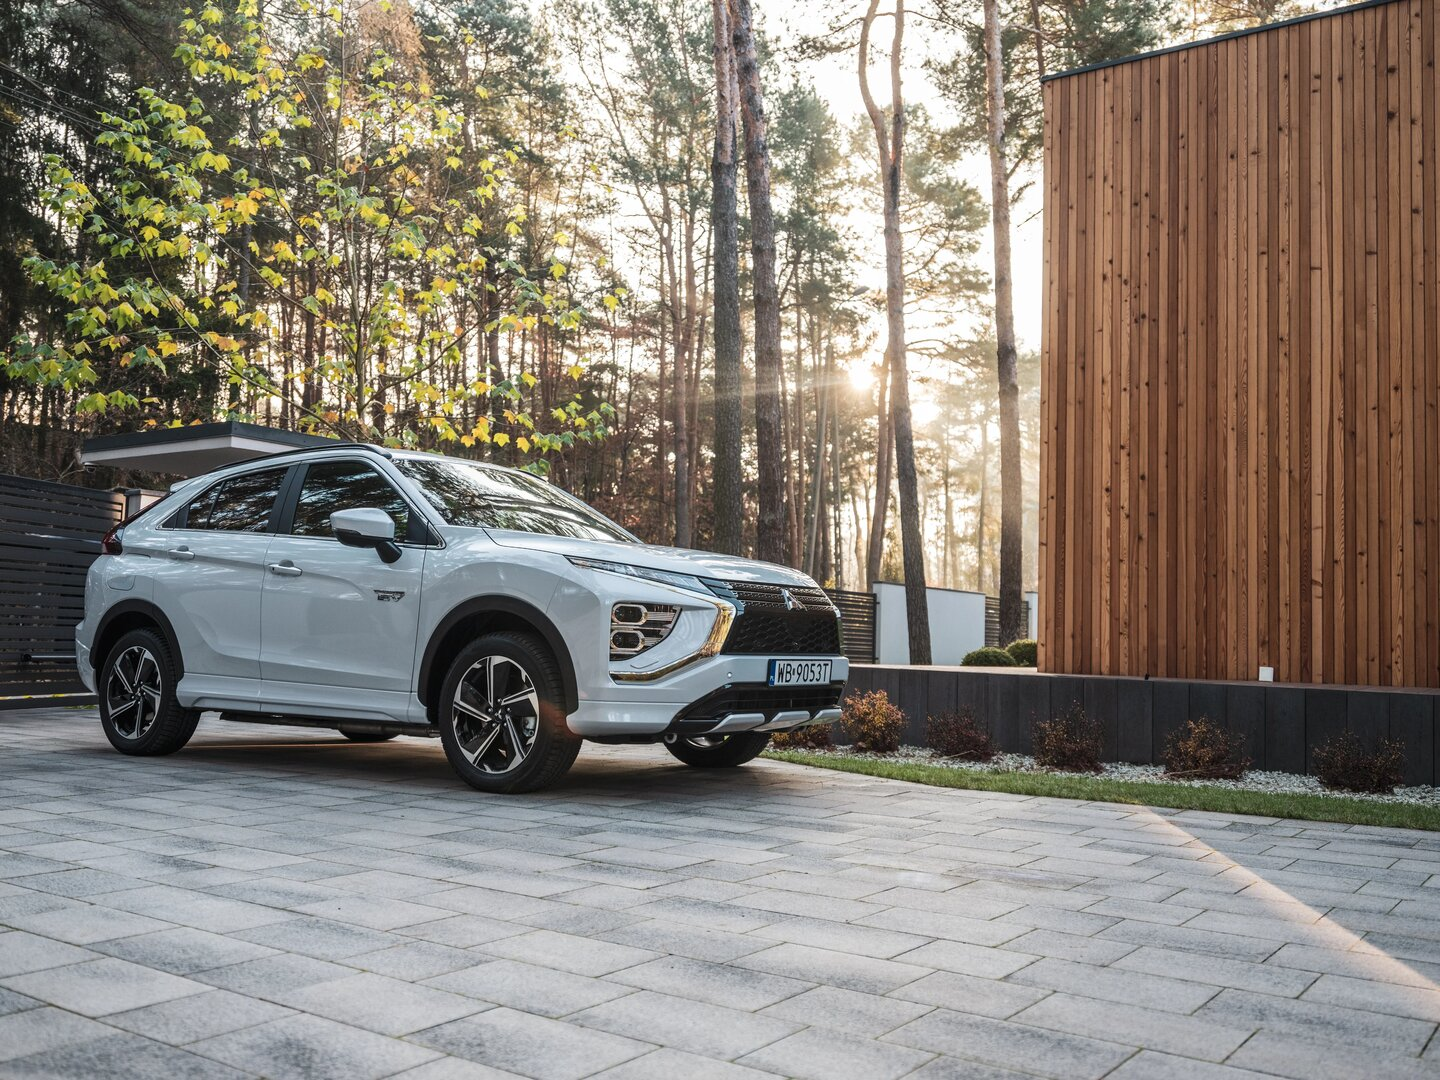 Good Design Award 2020 dla nowego Mitsubishi Eclipse Cross PHEV